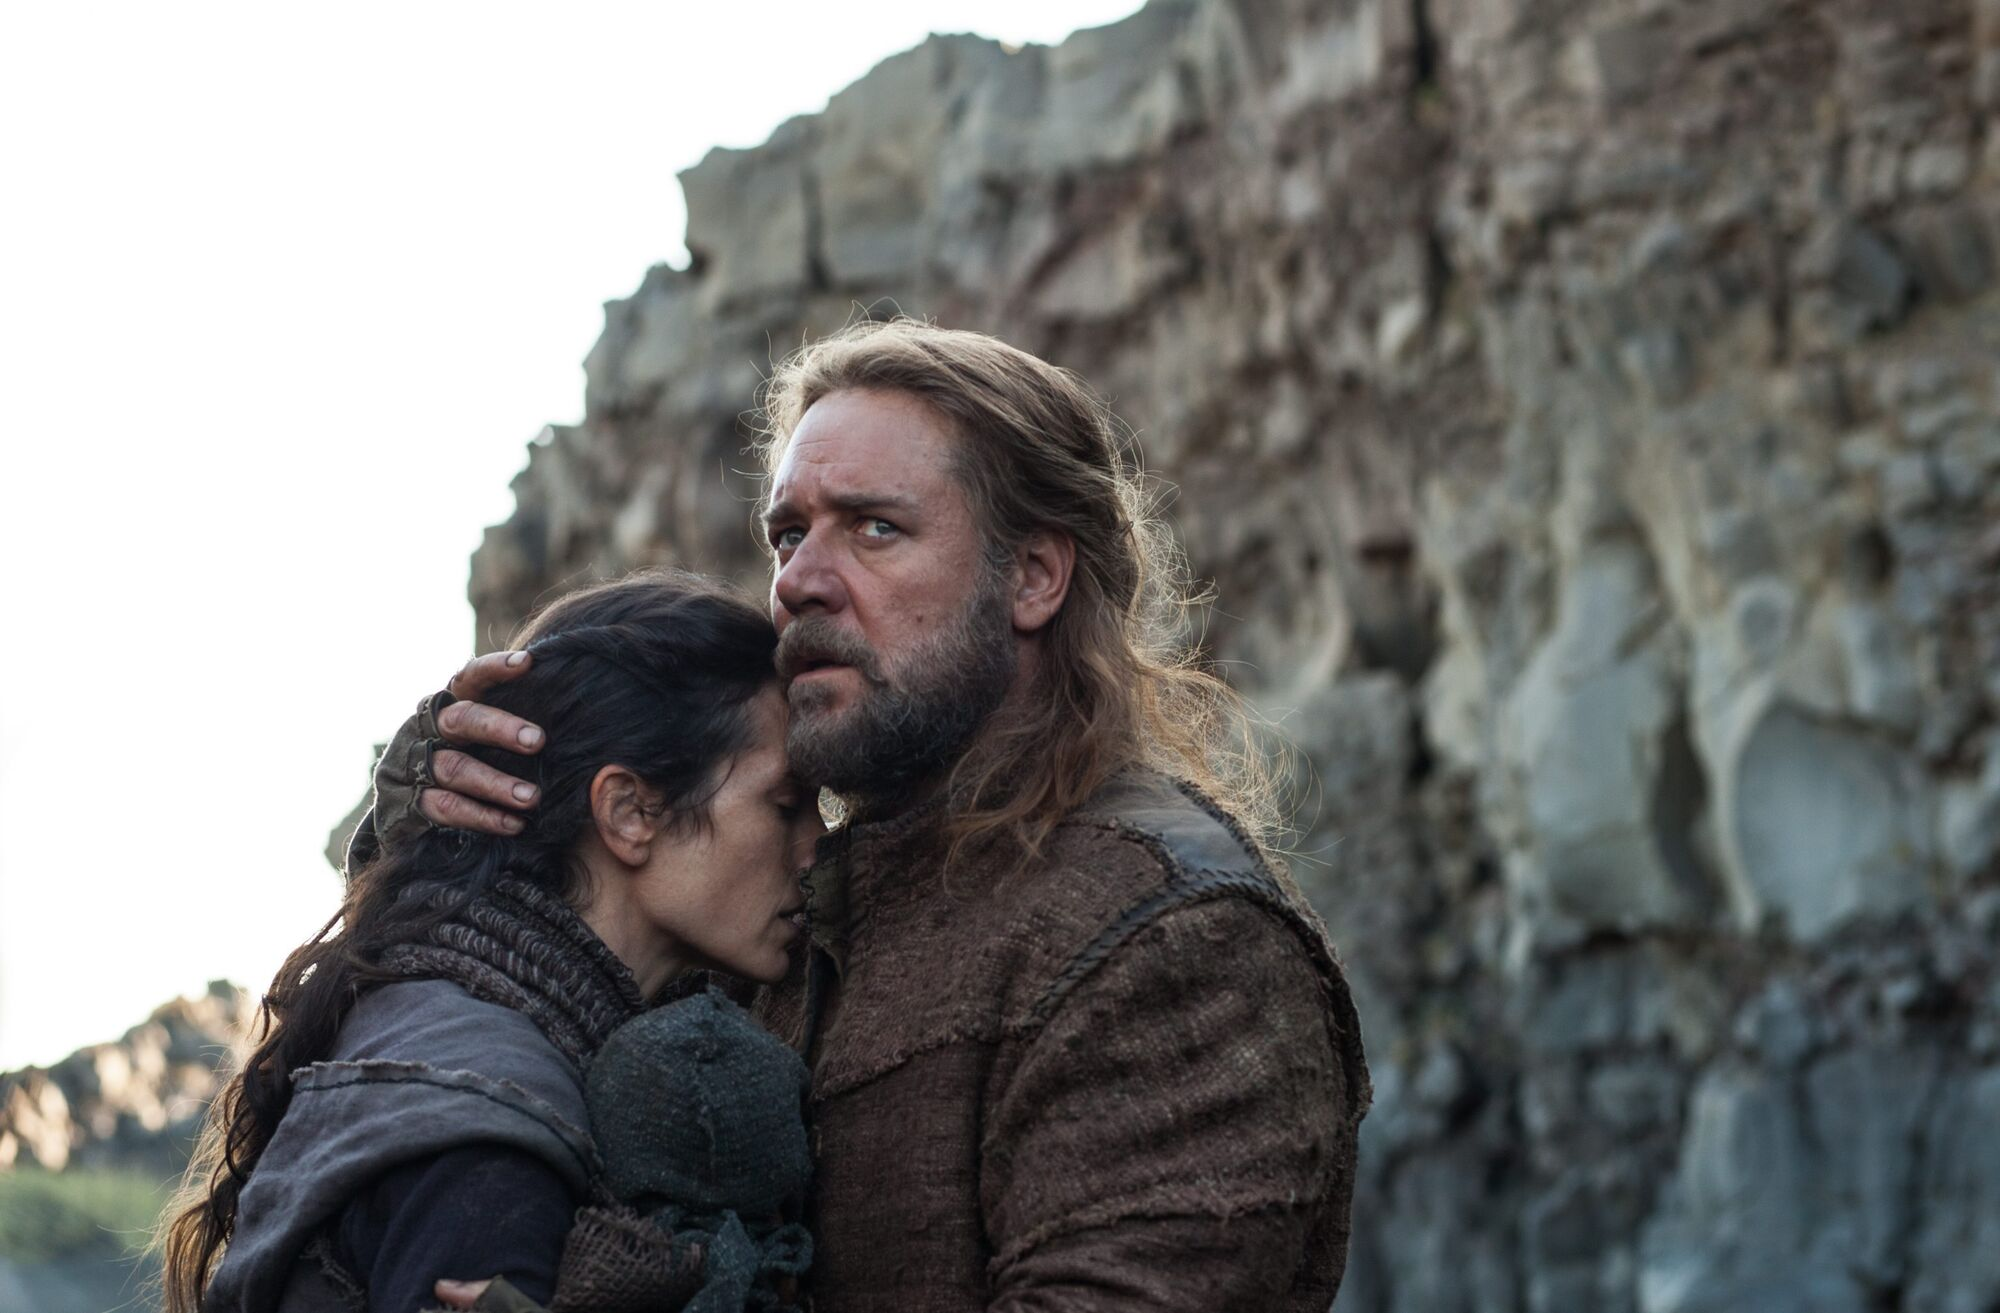 Jennifer Connelly and Russell Crowe in a scene from Noah.